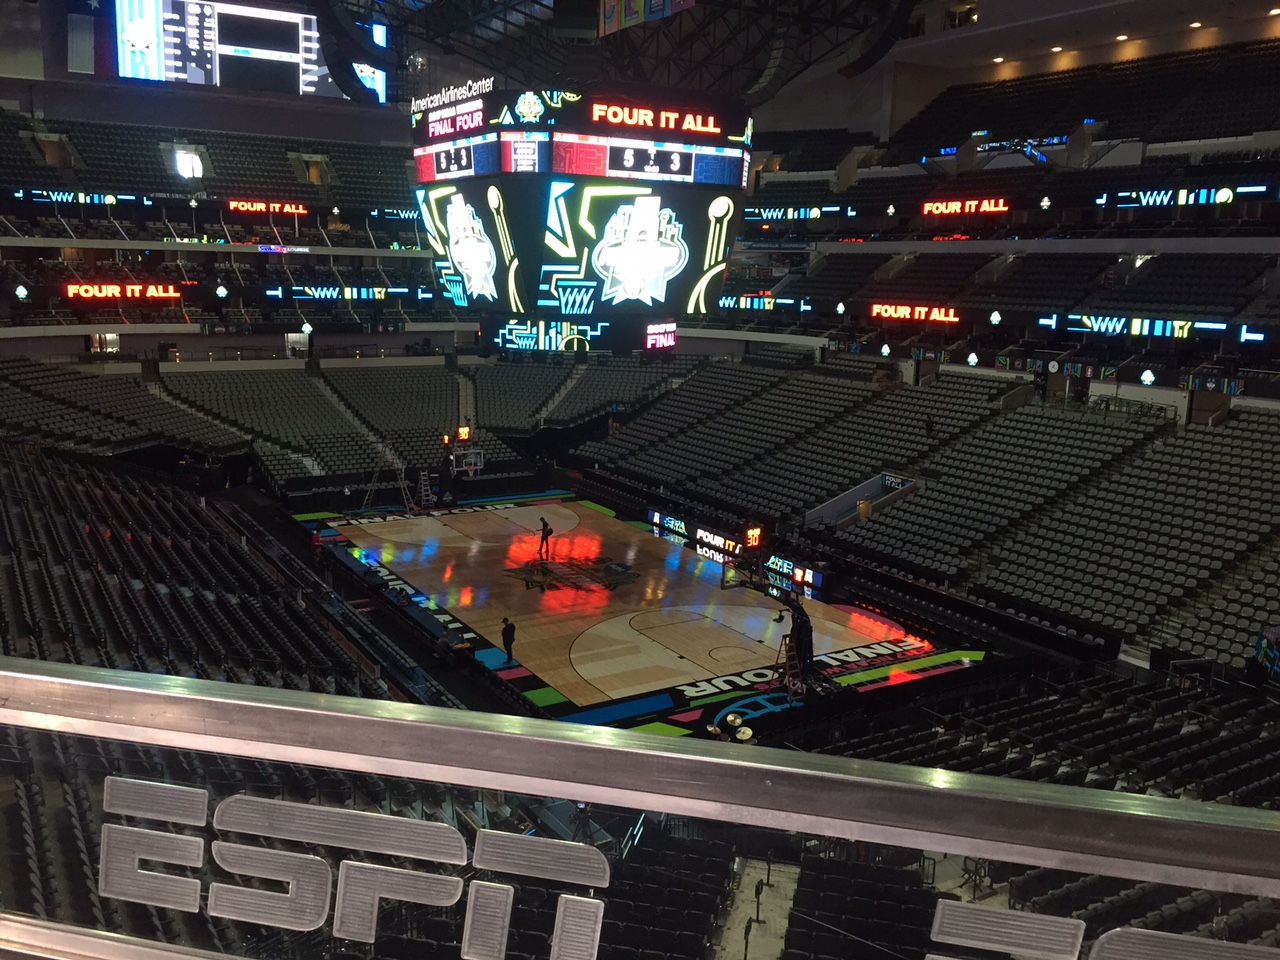 Espn Sets The Stage For Women's Final Four Showdown In Dallas Inside American Airlines Center Printable Calendar